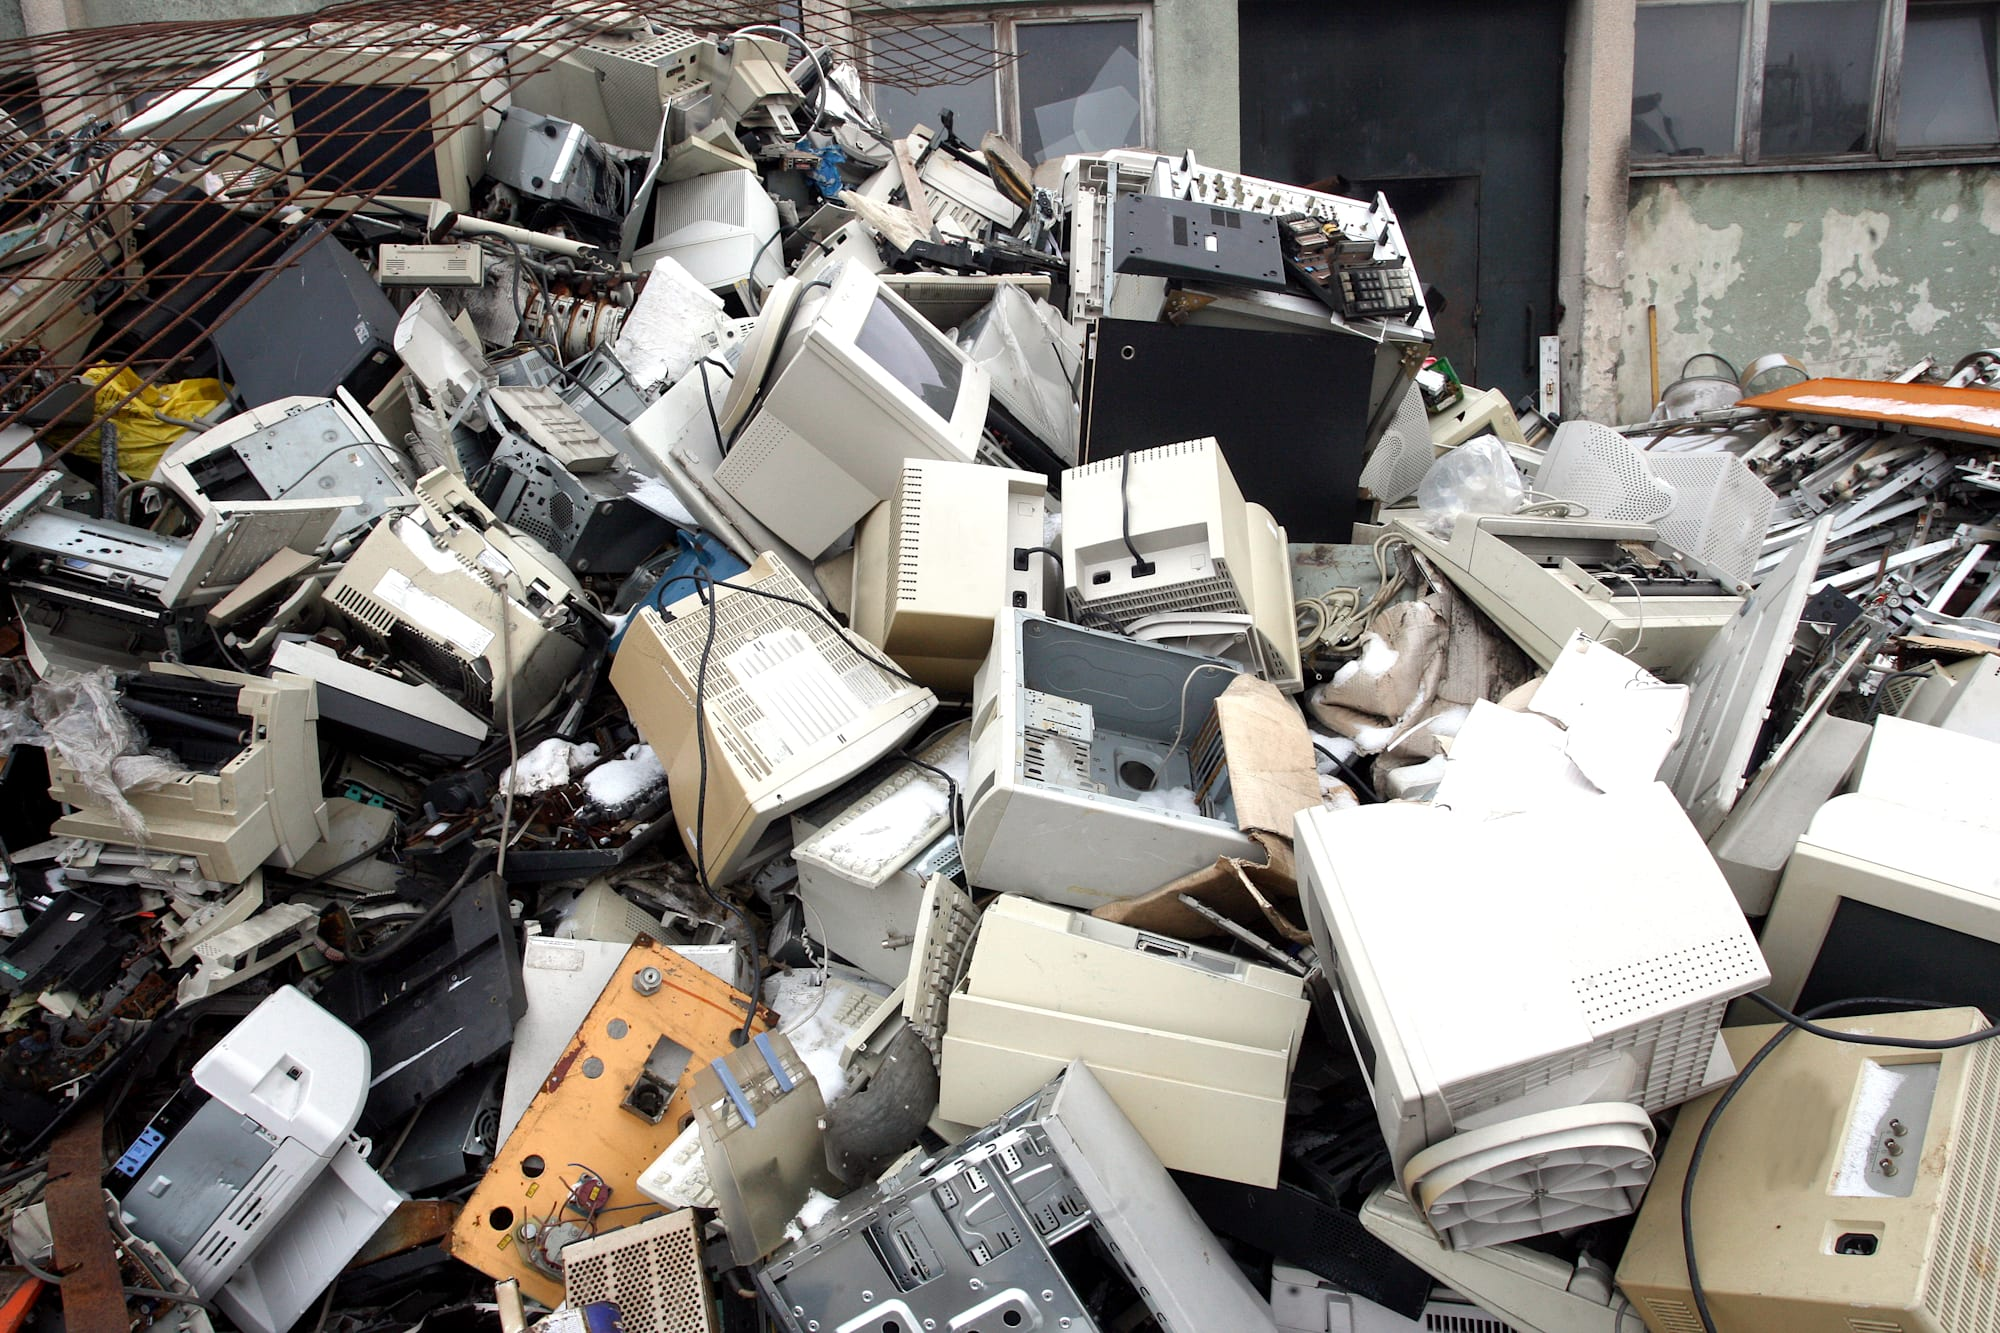 computer parts for electronic recycling